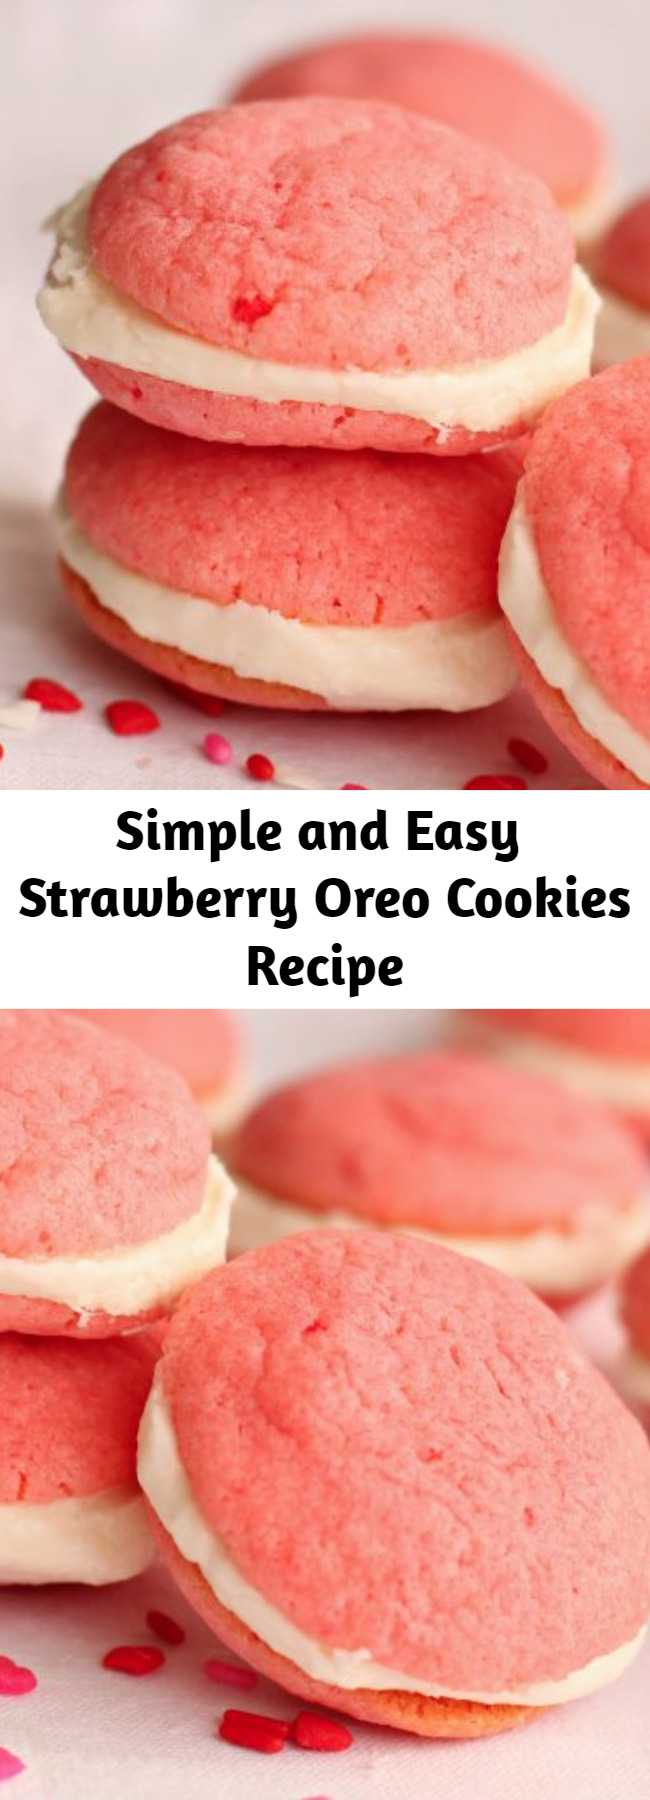 Simple and Easy Strawberry Oreo Cookies Recipe - These Strawberry Oreo Cookies are easy to make and full of delicious strawberry flavor. You are going to love these yummy and simple cookies.